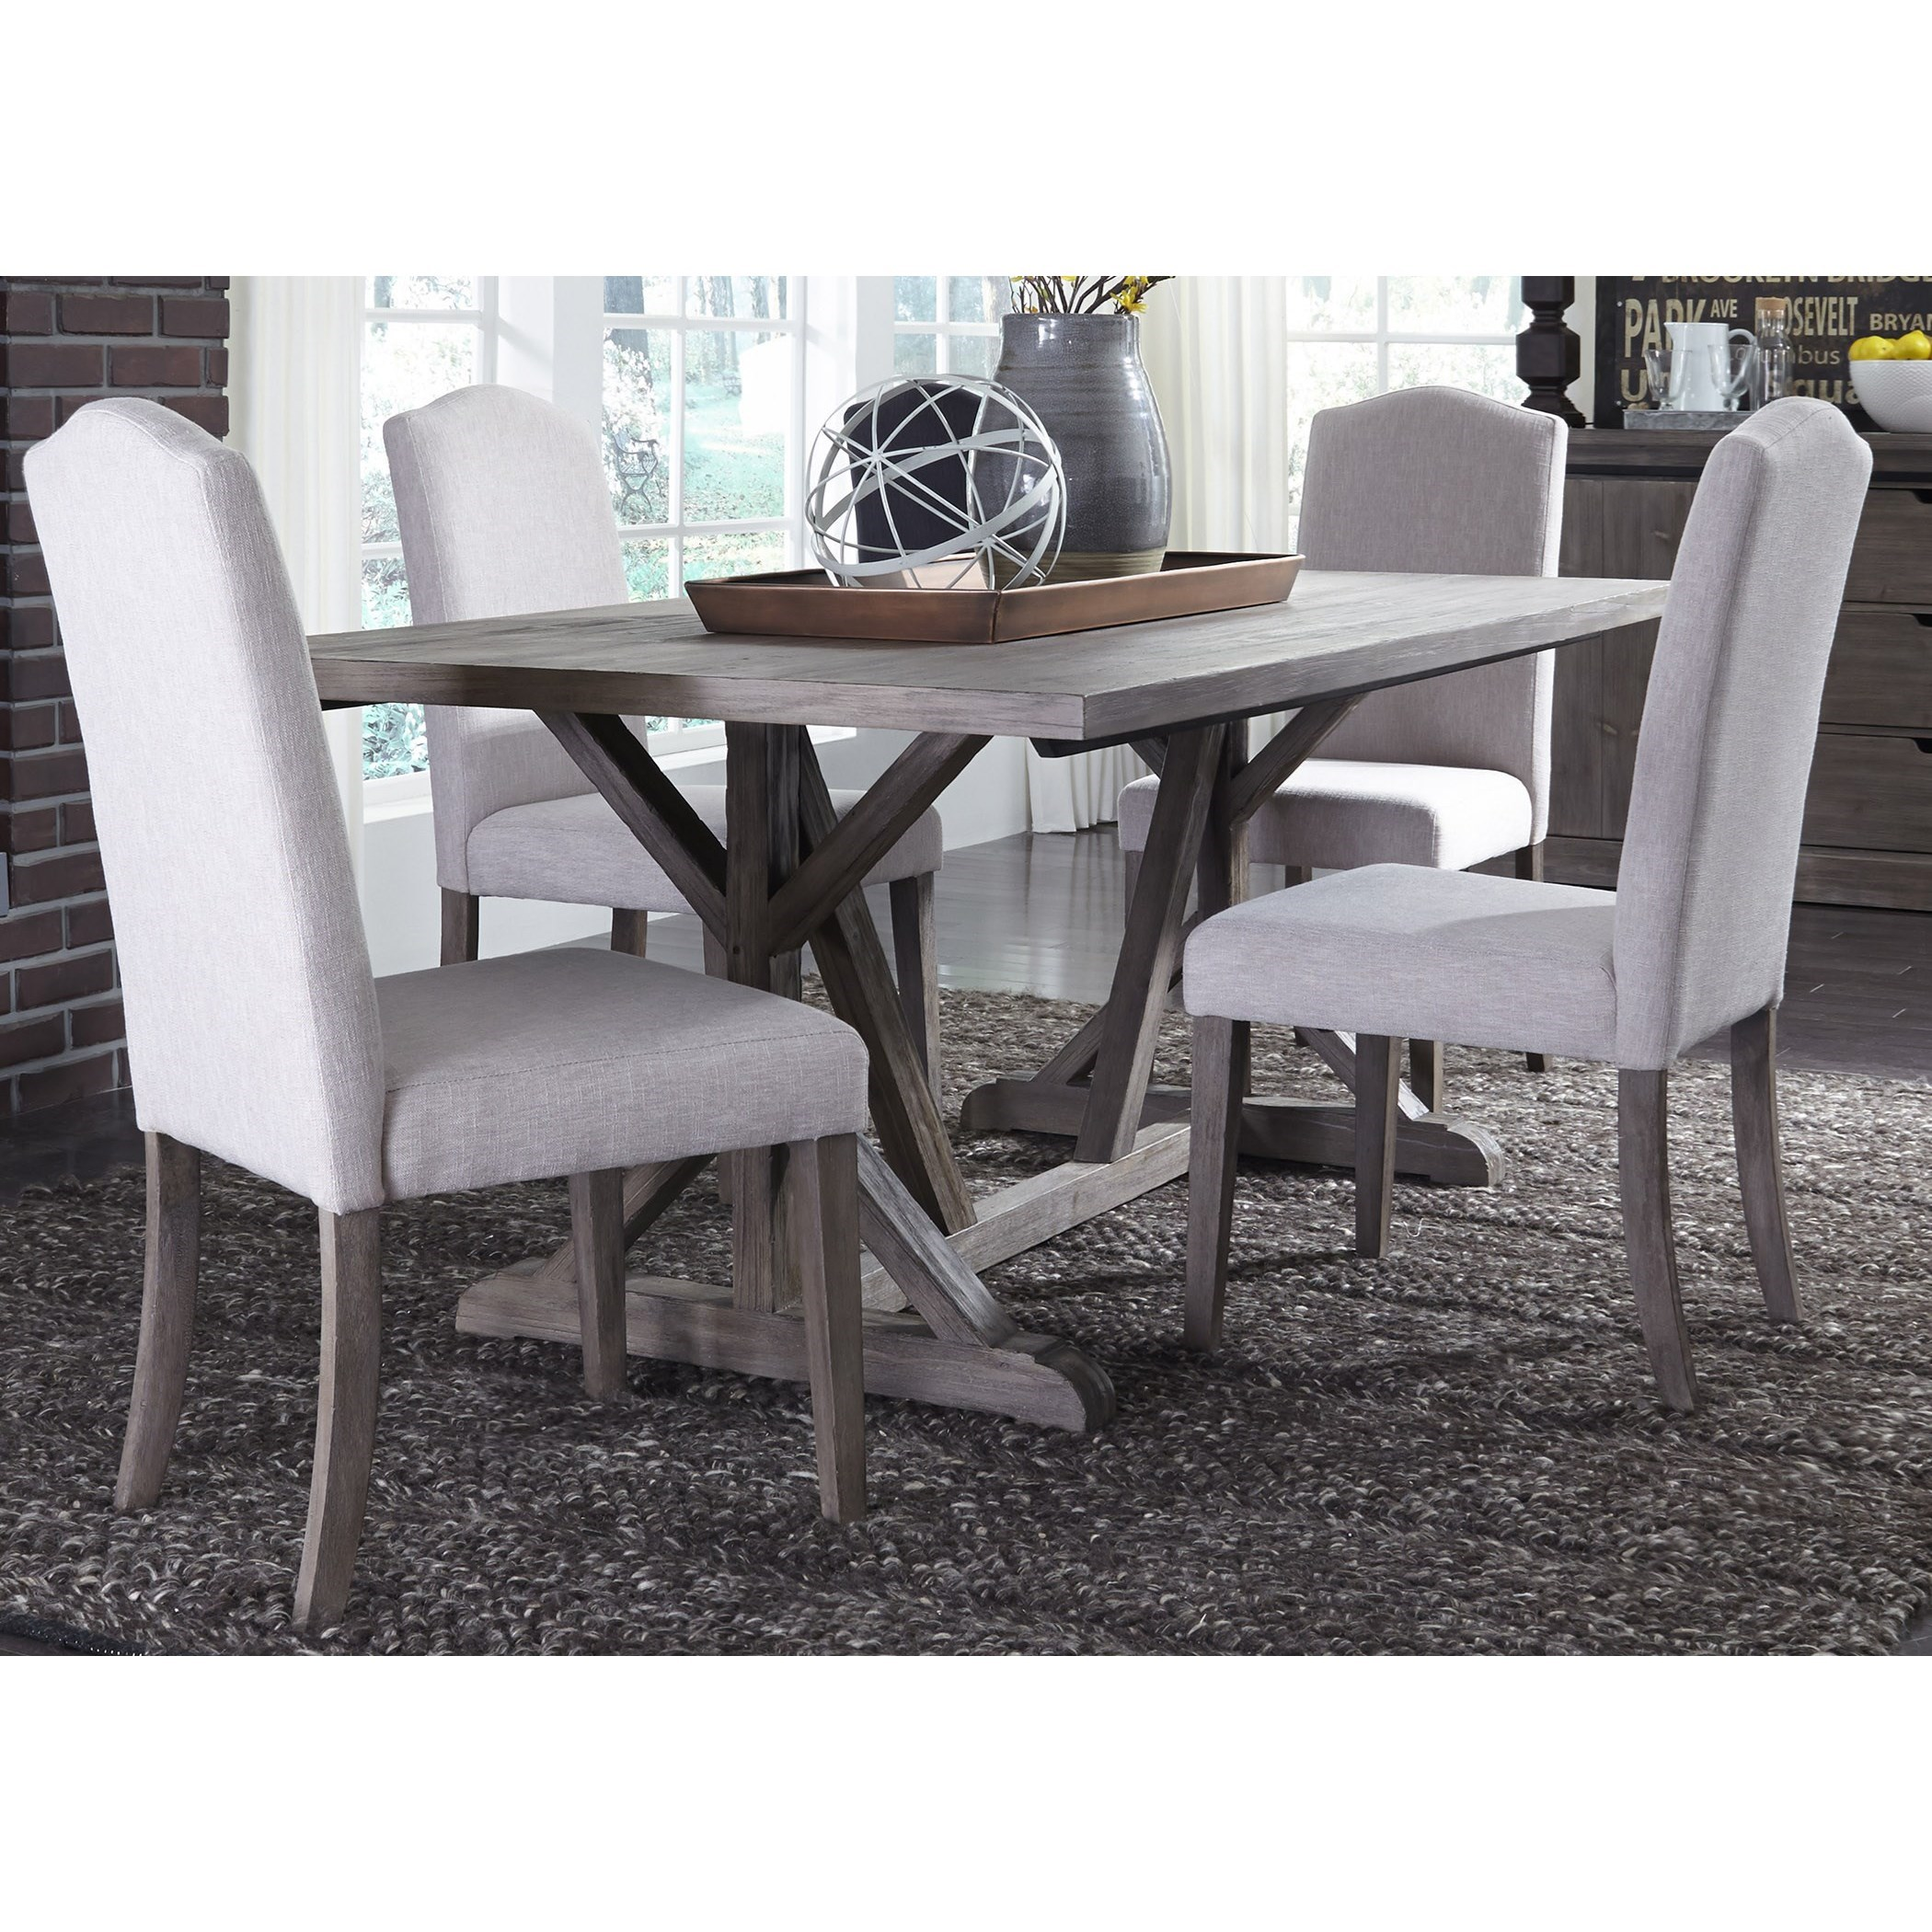 Carolina Lakes 5 Piece Trestle Table Set  by Libby at Walker's Furniture